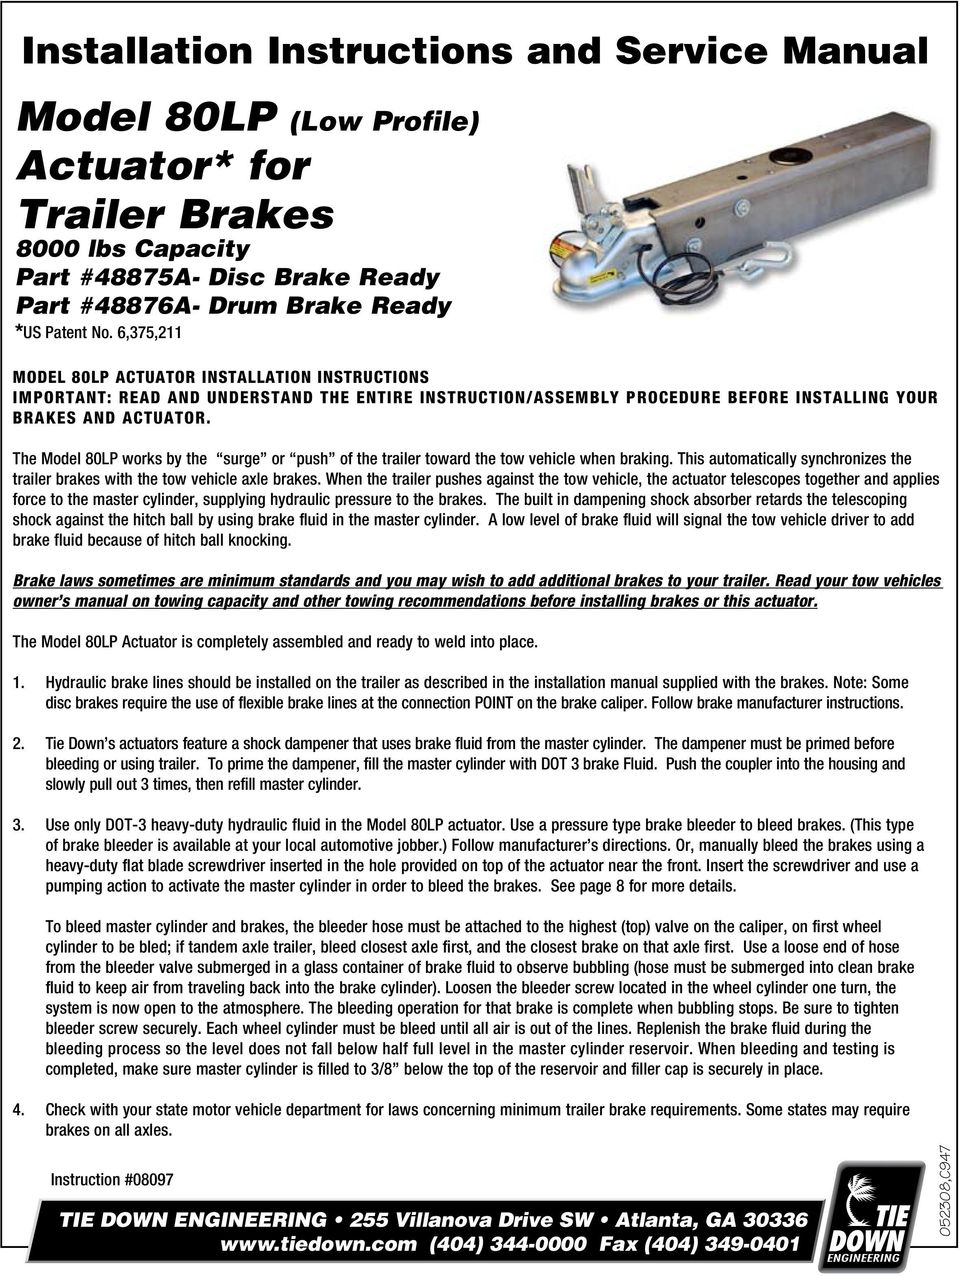 The Model 8 0LP works by the surge or push of the trailer toward the tow vehicle when braking. This automatically synchronizes the trailer brakes with the tow vehicle axle brakes.